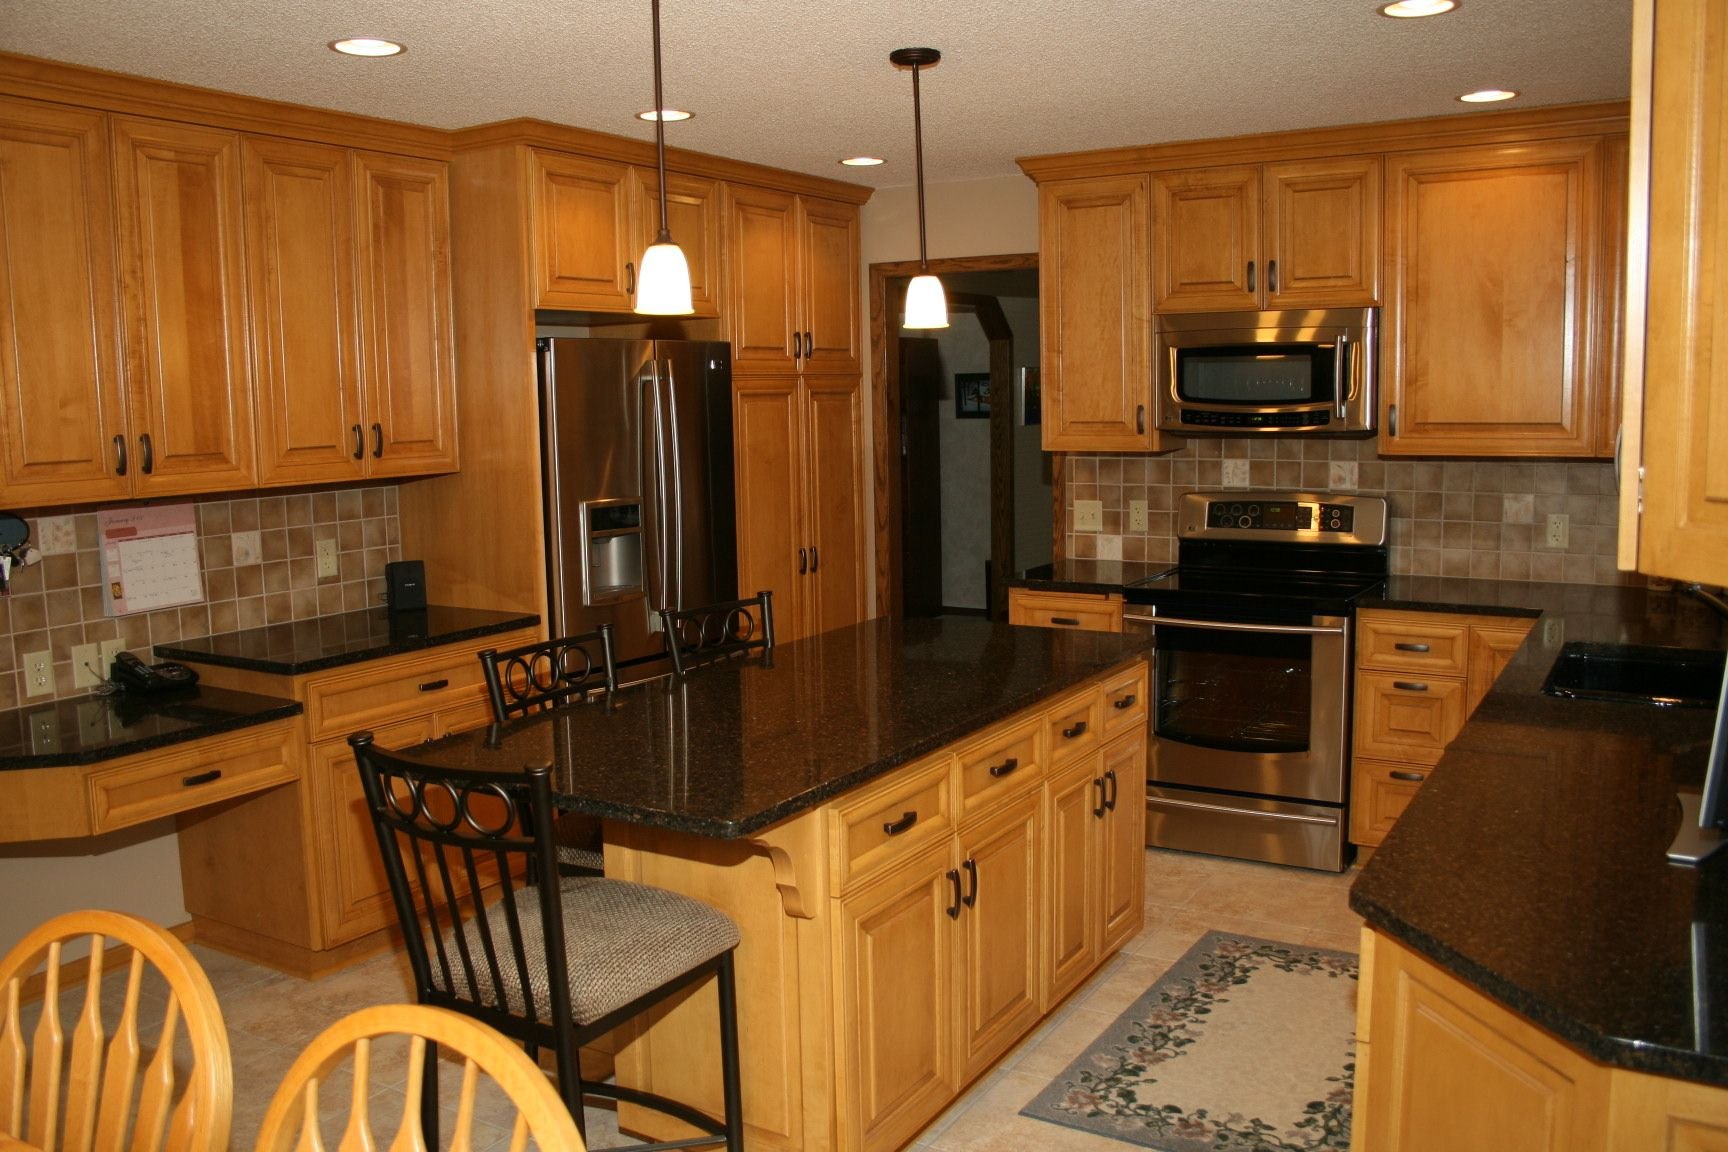 dark counters with wood cabinets   Kitchen Countertop ... on Backsplash Maple Cabinets With Black Countertops  id=97668